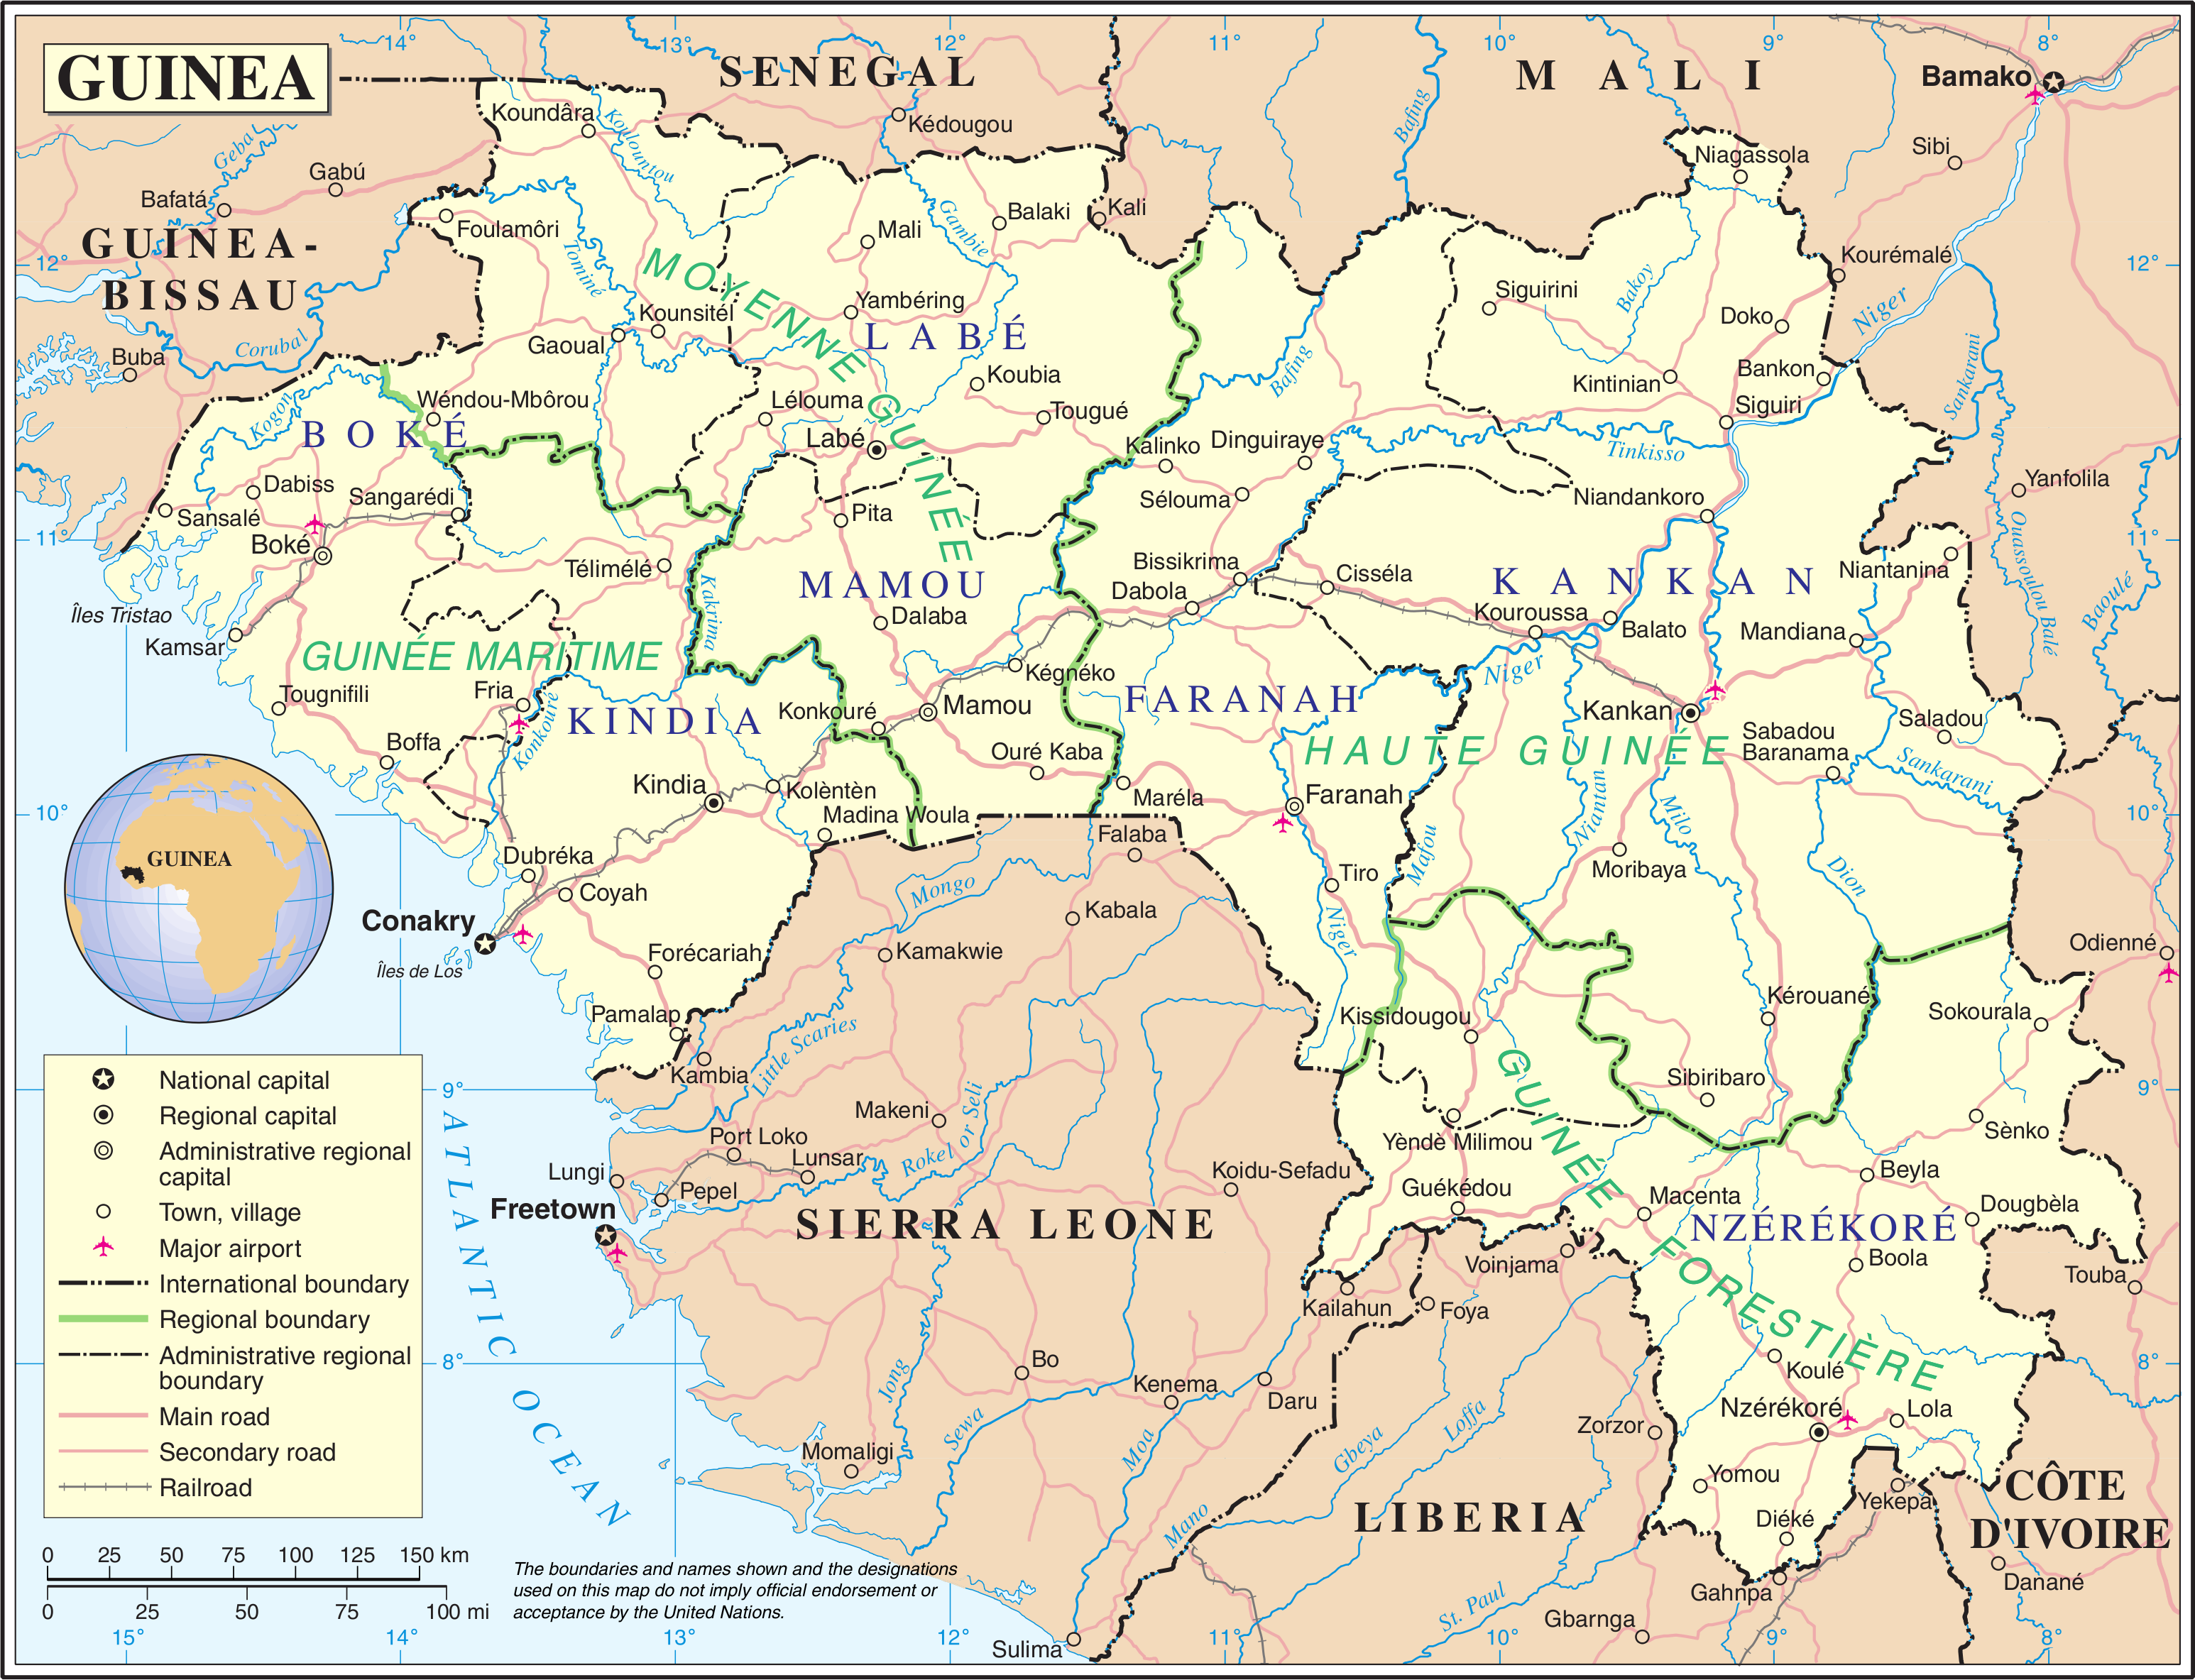 map of state la with File Un Guinea on File Un Guinea further Maremma also 4455431646 as well LocationPhotoDirectLink G312741 D314078 I244278057 El Obelisco Buenos Aires Capital Federal District in addition Evolution Homo.